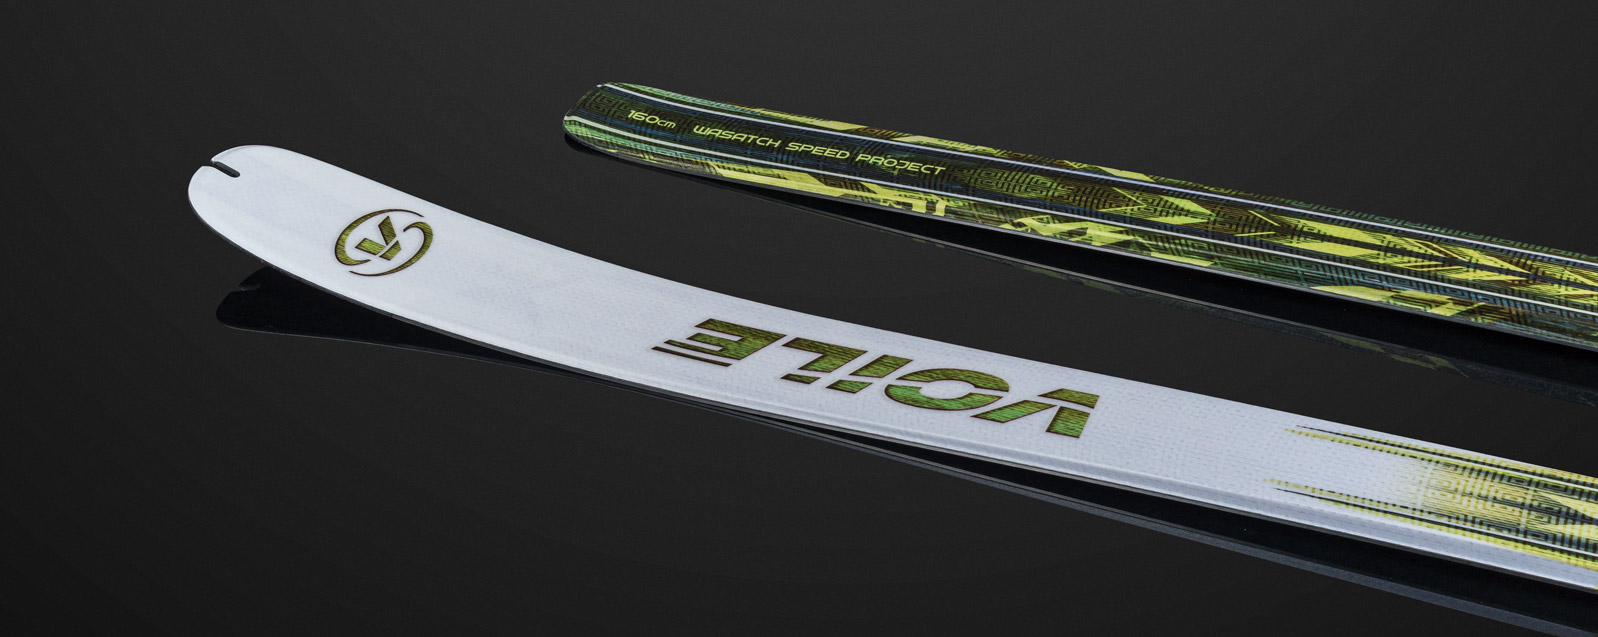 Voile WSP Skis